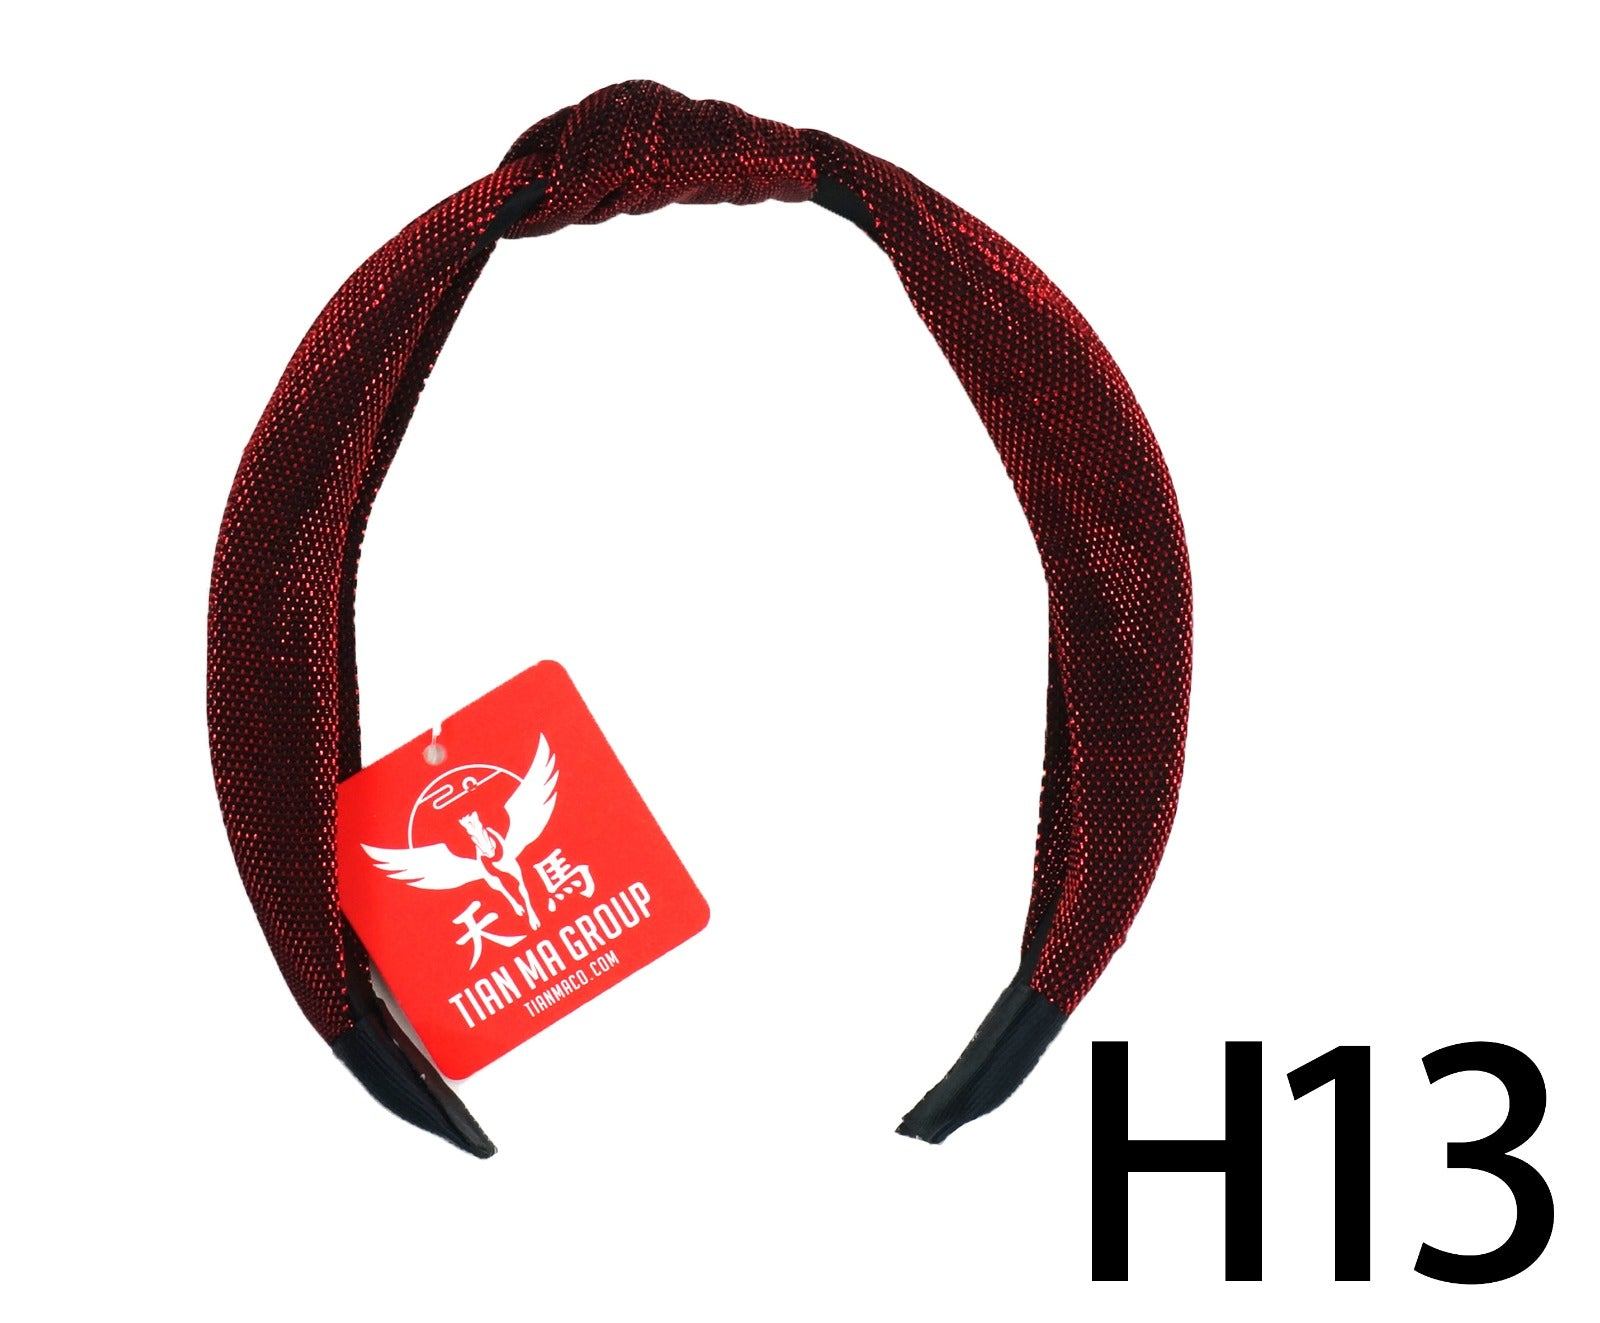 Scarf Hair Band with Knot - H13 (59g – Piece)